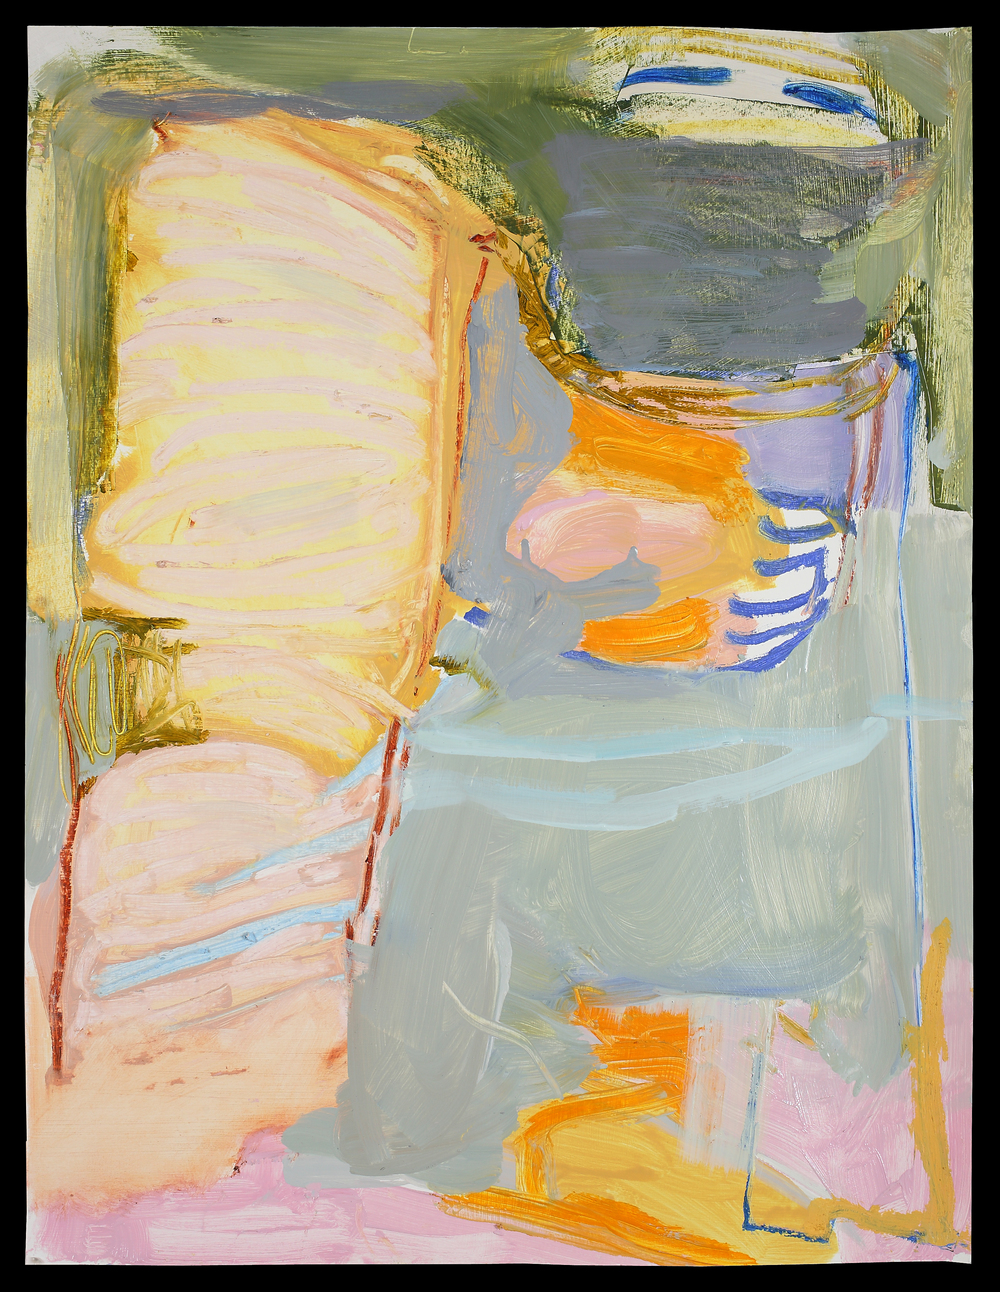 L. Glavin_TheChase_oil on gessoed paper_28x22 framed_1500.jpg